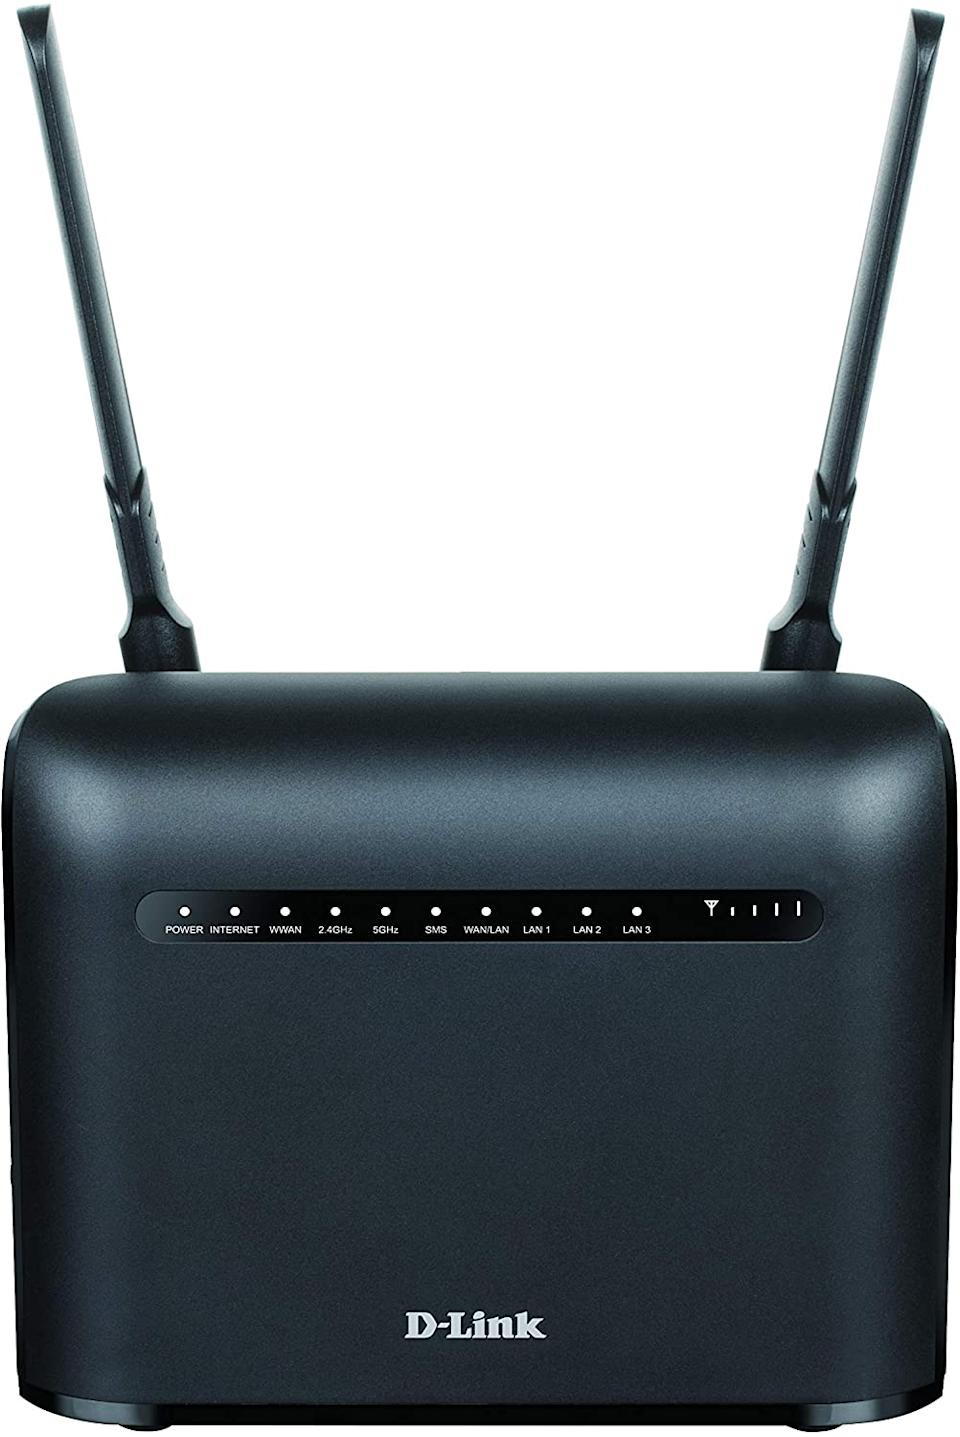 D-Link DWR-953V2 Router LTE Wireless AC1200 Cat4